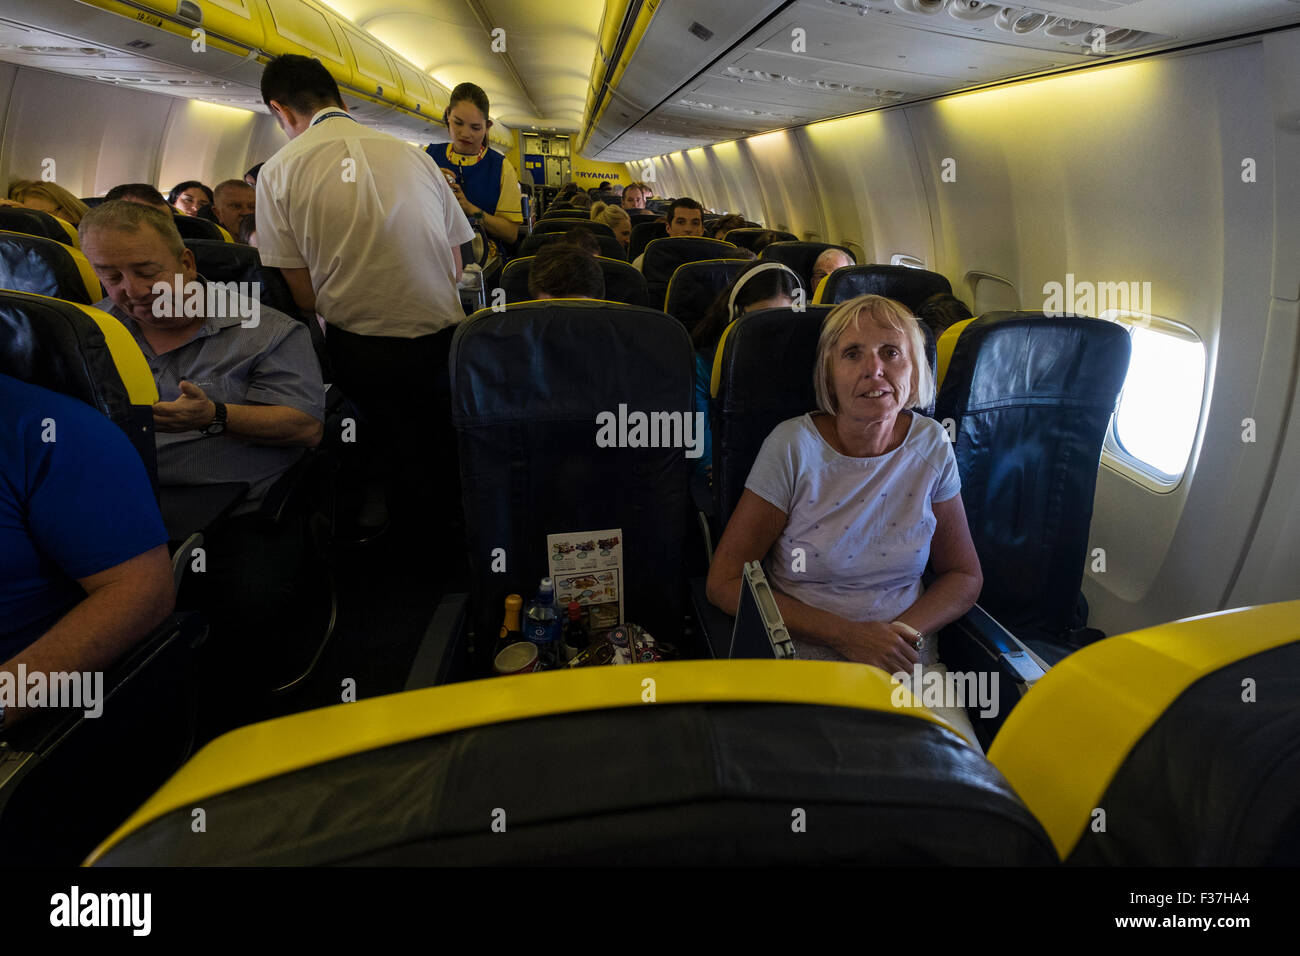 Passengers and cabin crew on a Ryanair Airbus A380 flight. - Stock Image